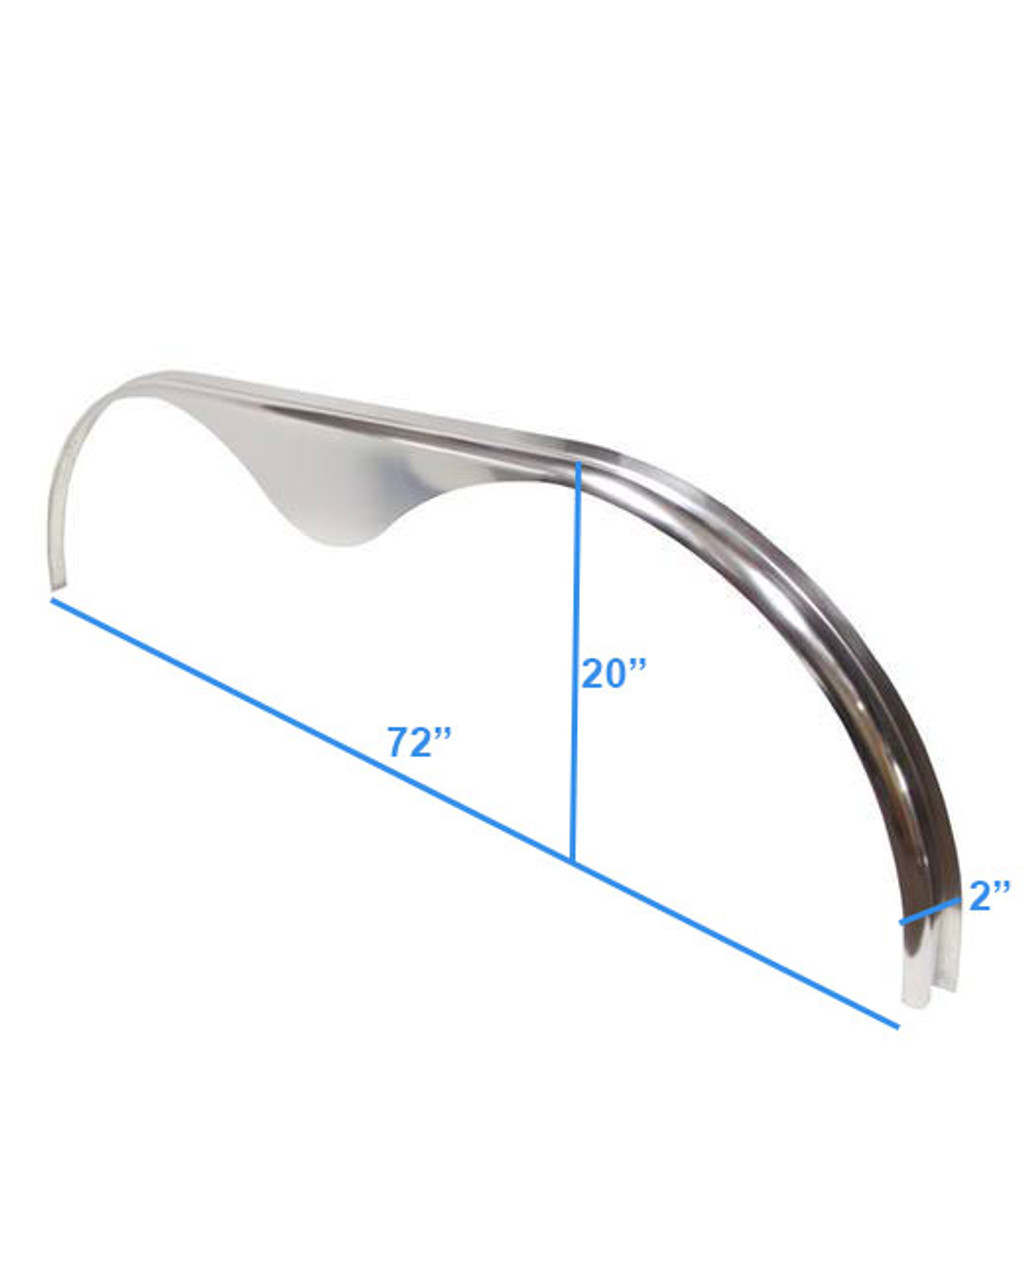 72x2 Smooth Aluminum Tandem Axle Teardrop Fender Flare - One Fender